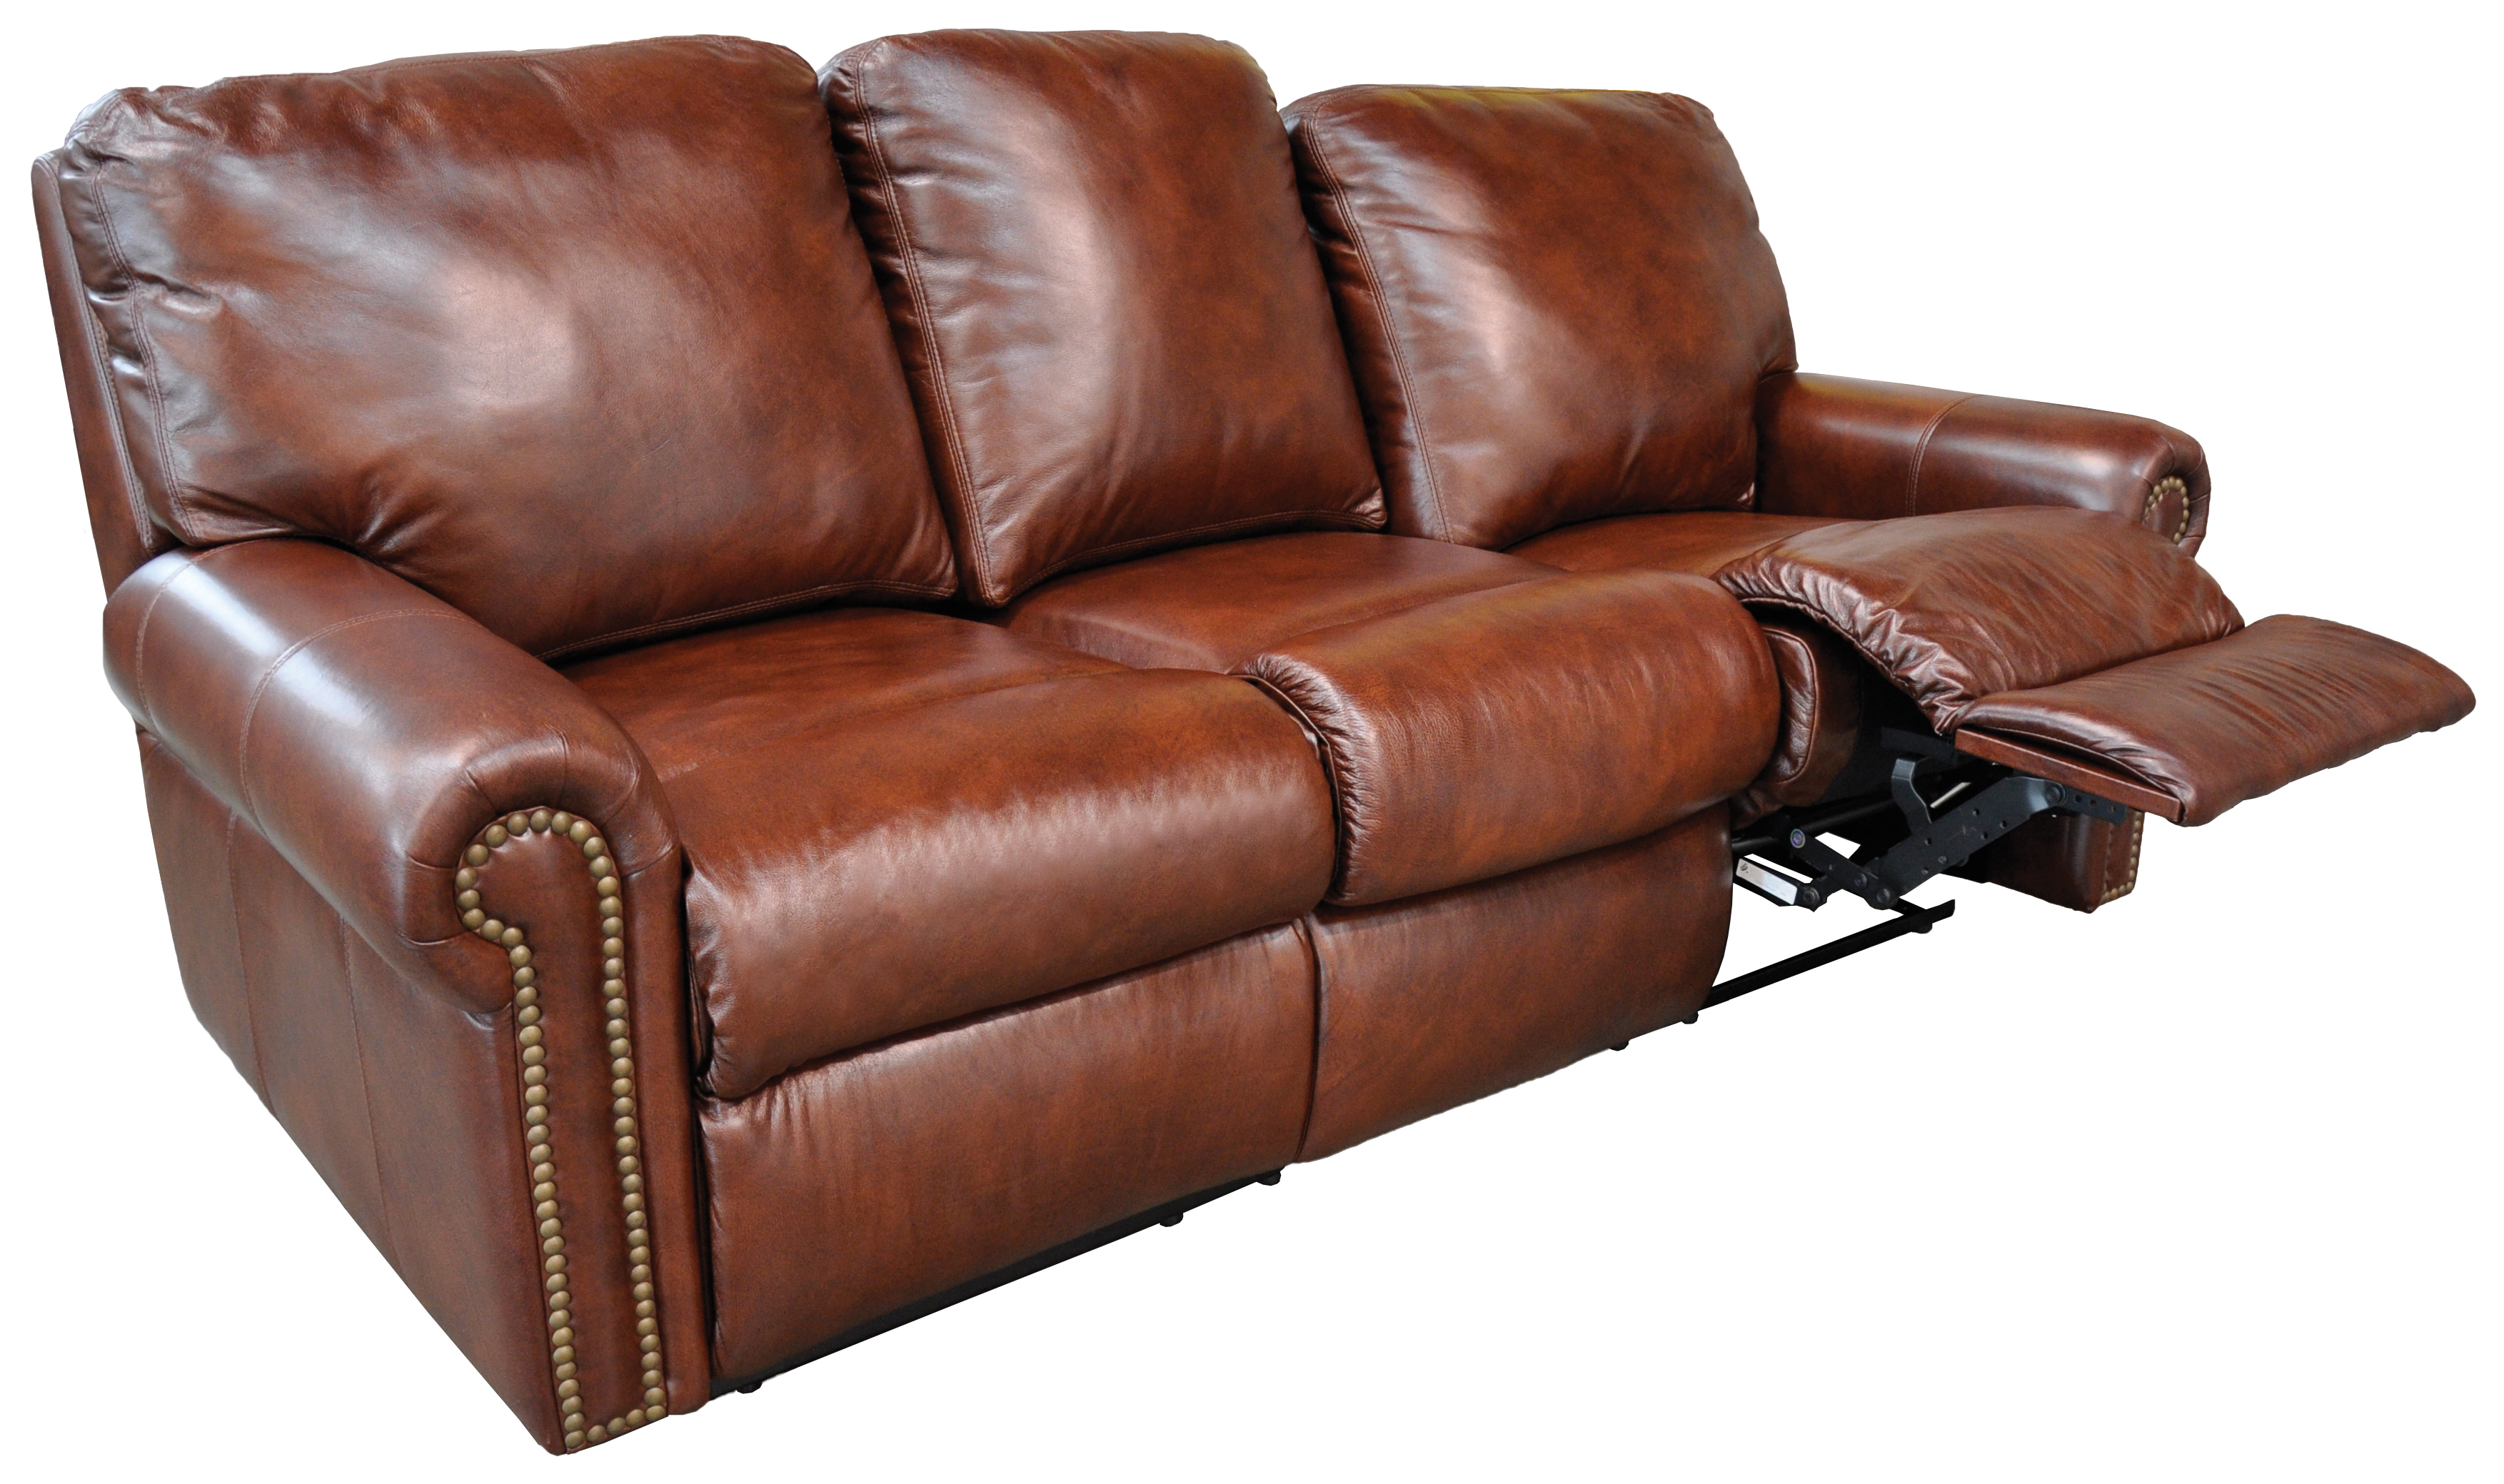 leather sectional sofa bed recliner photo - 9